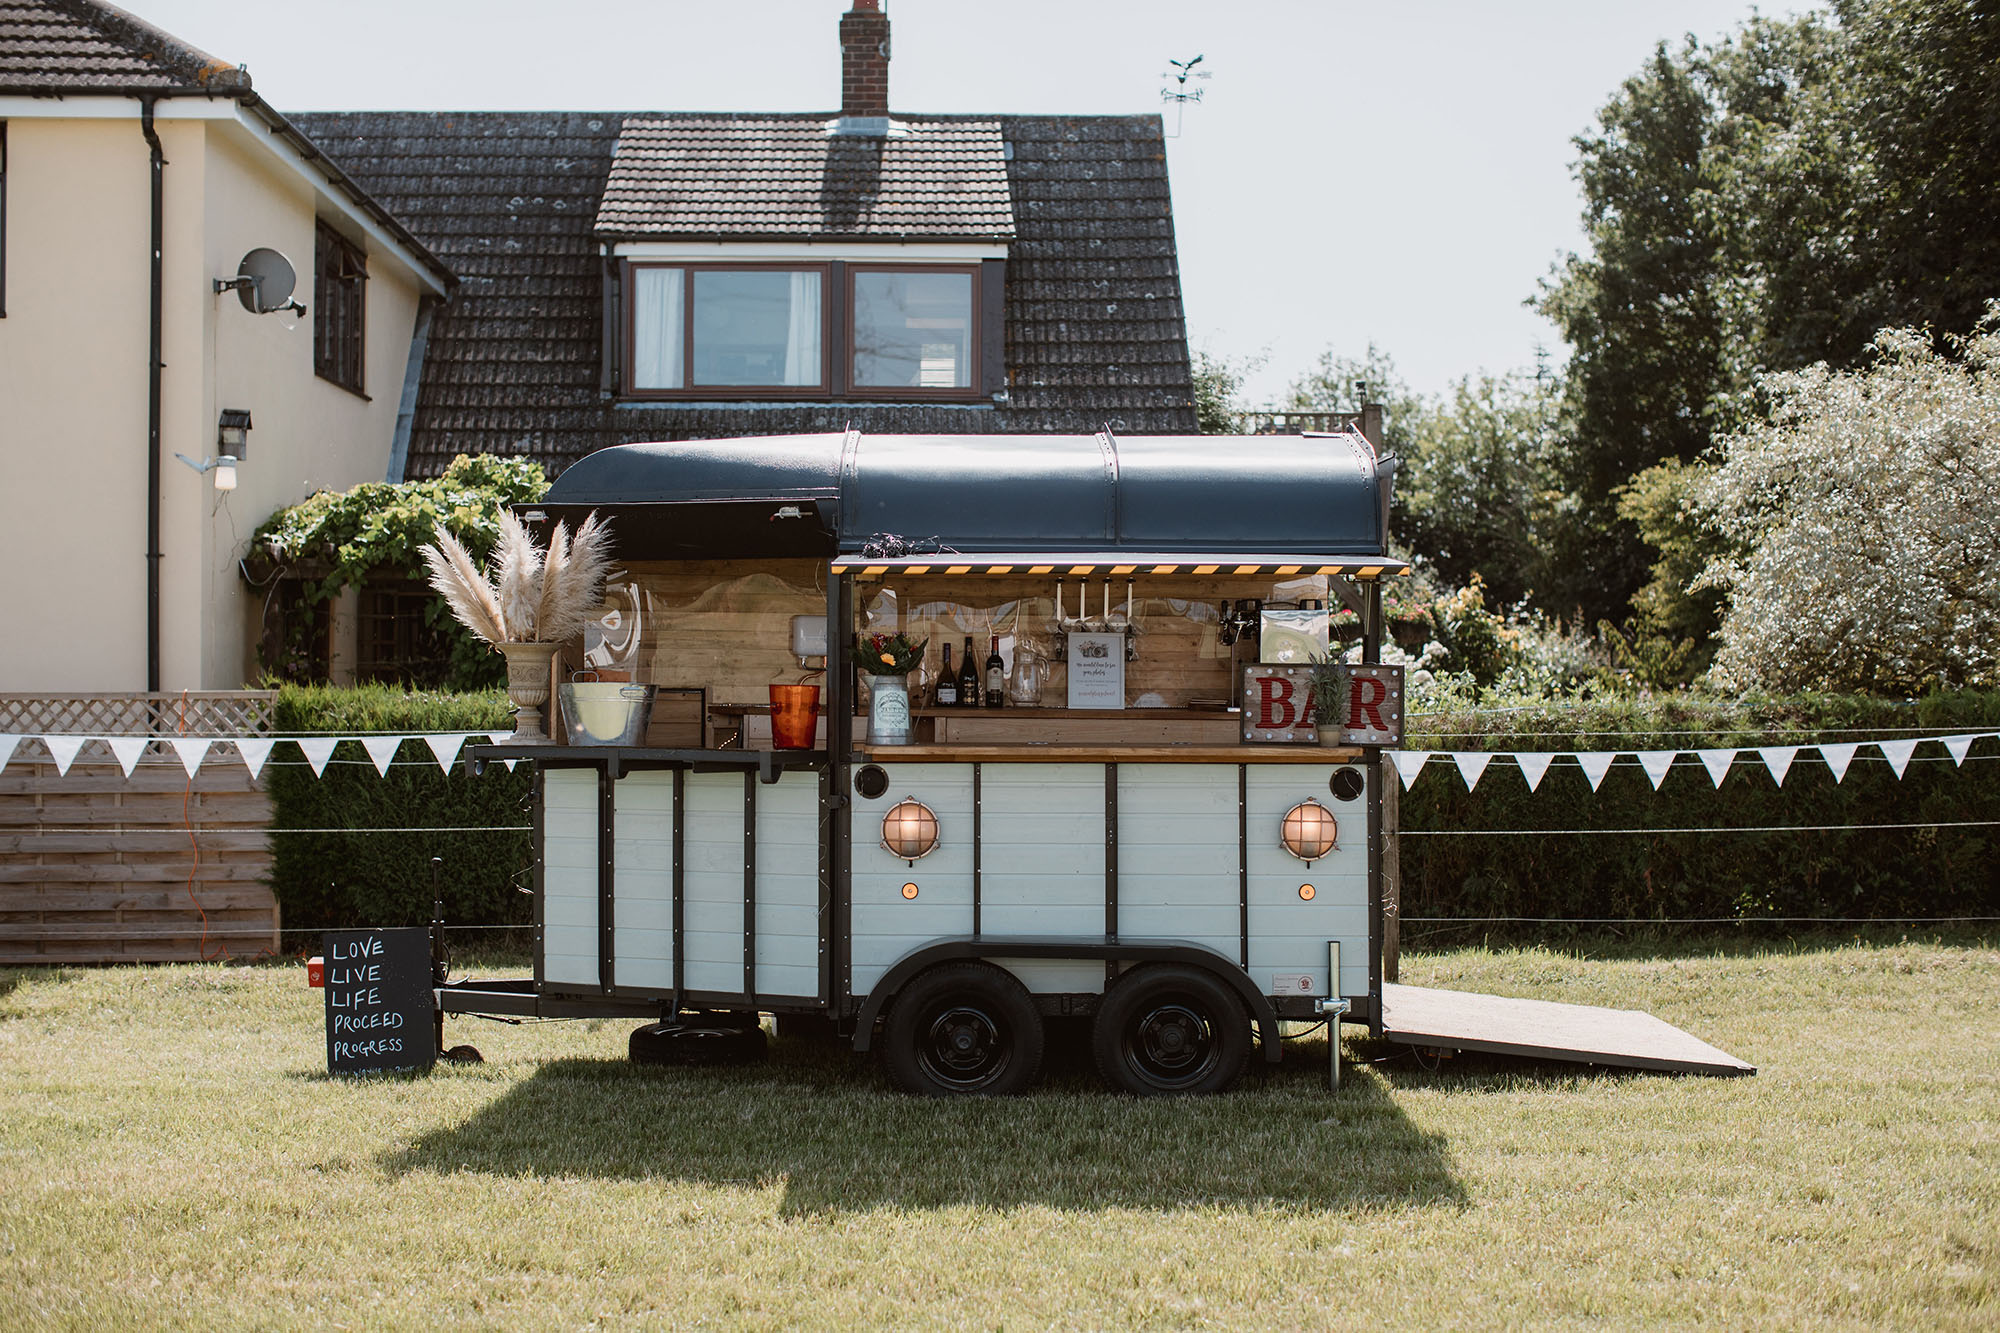 Mobile bar set up in a back garden. There's a house behind, white bunting and pampas grass on the end of the bar. Wedding image by Luke Hayden Photography